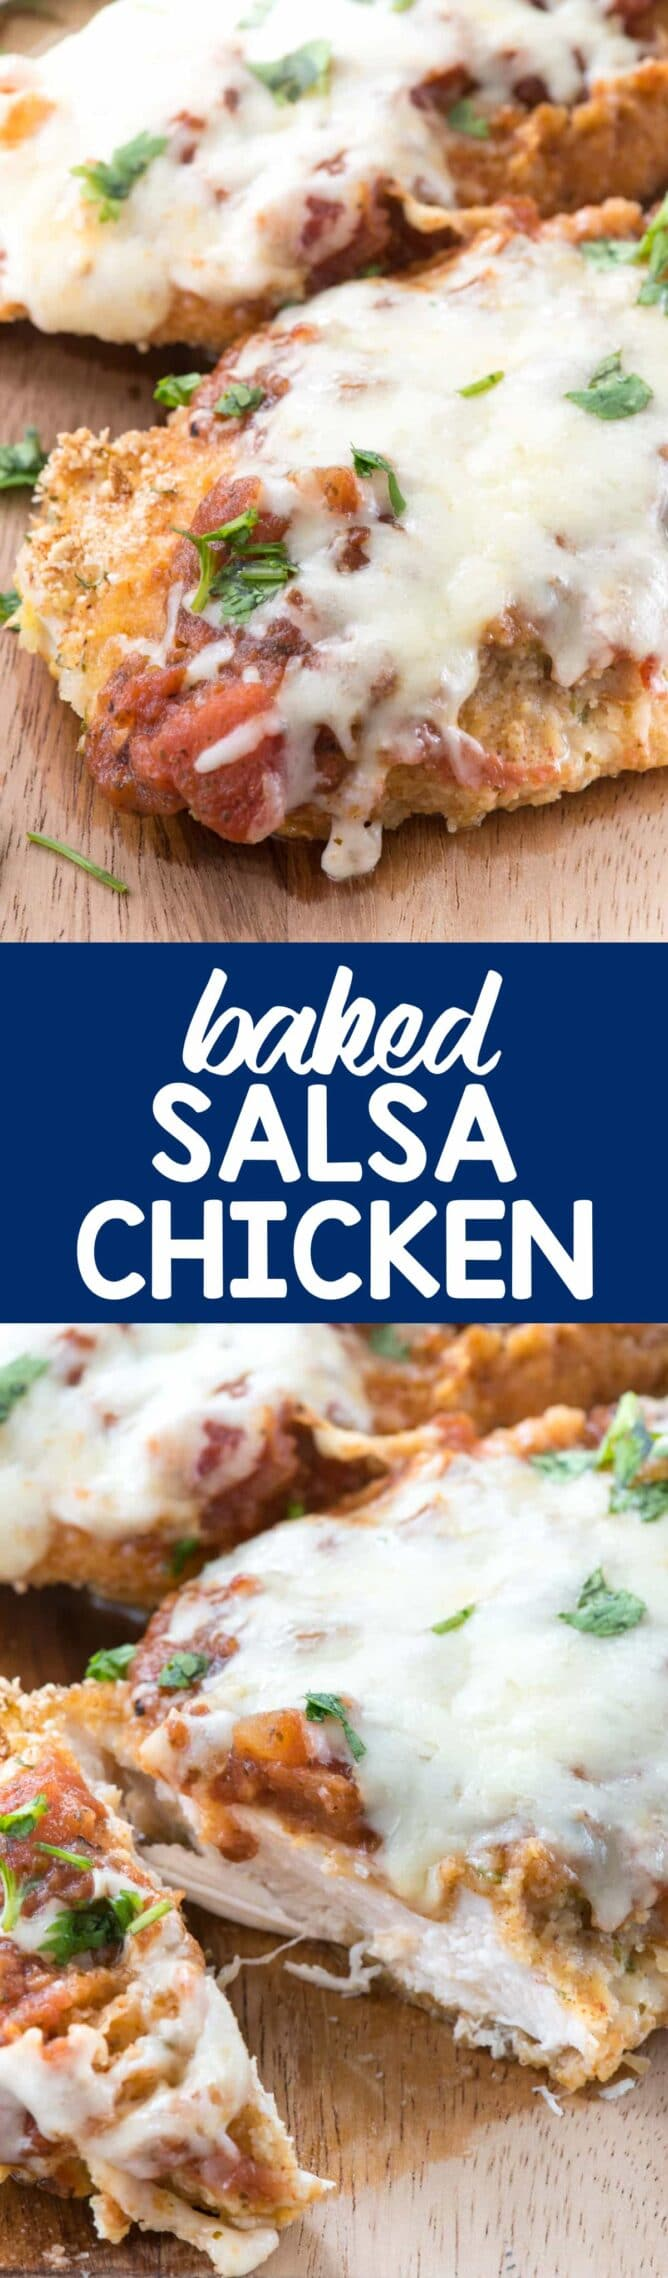 Baked Salsa Chicken collage photo